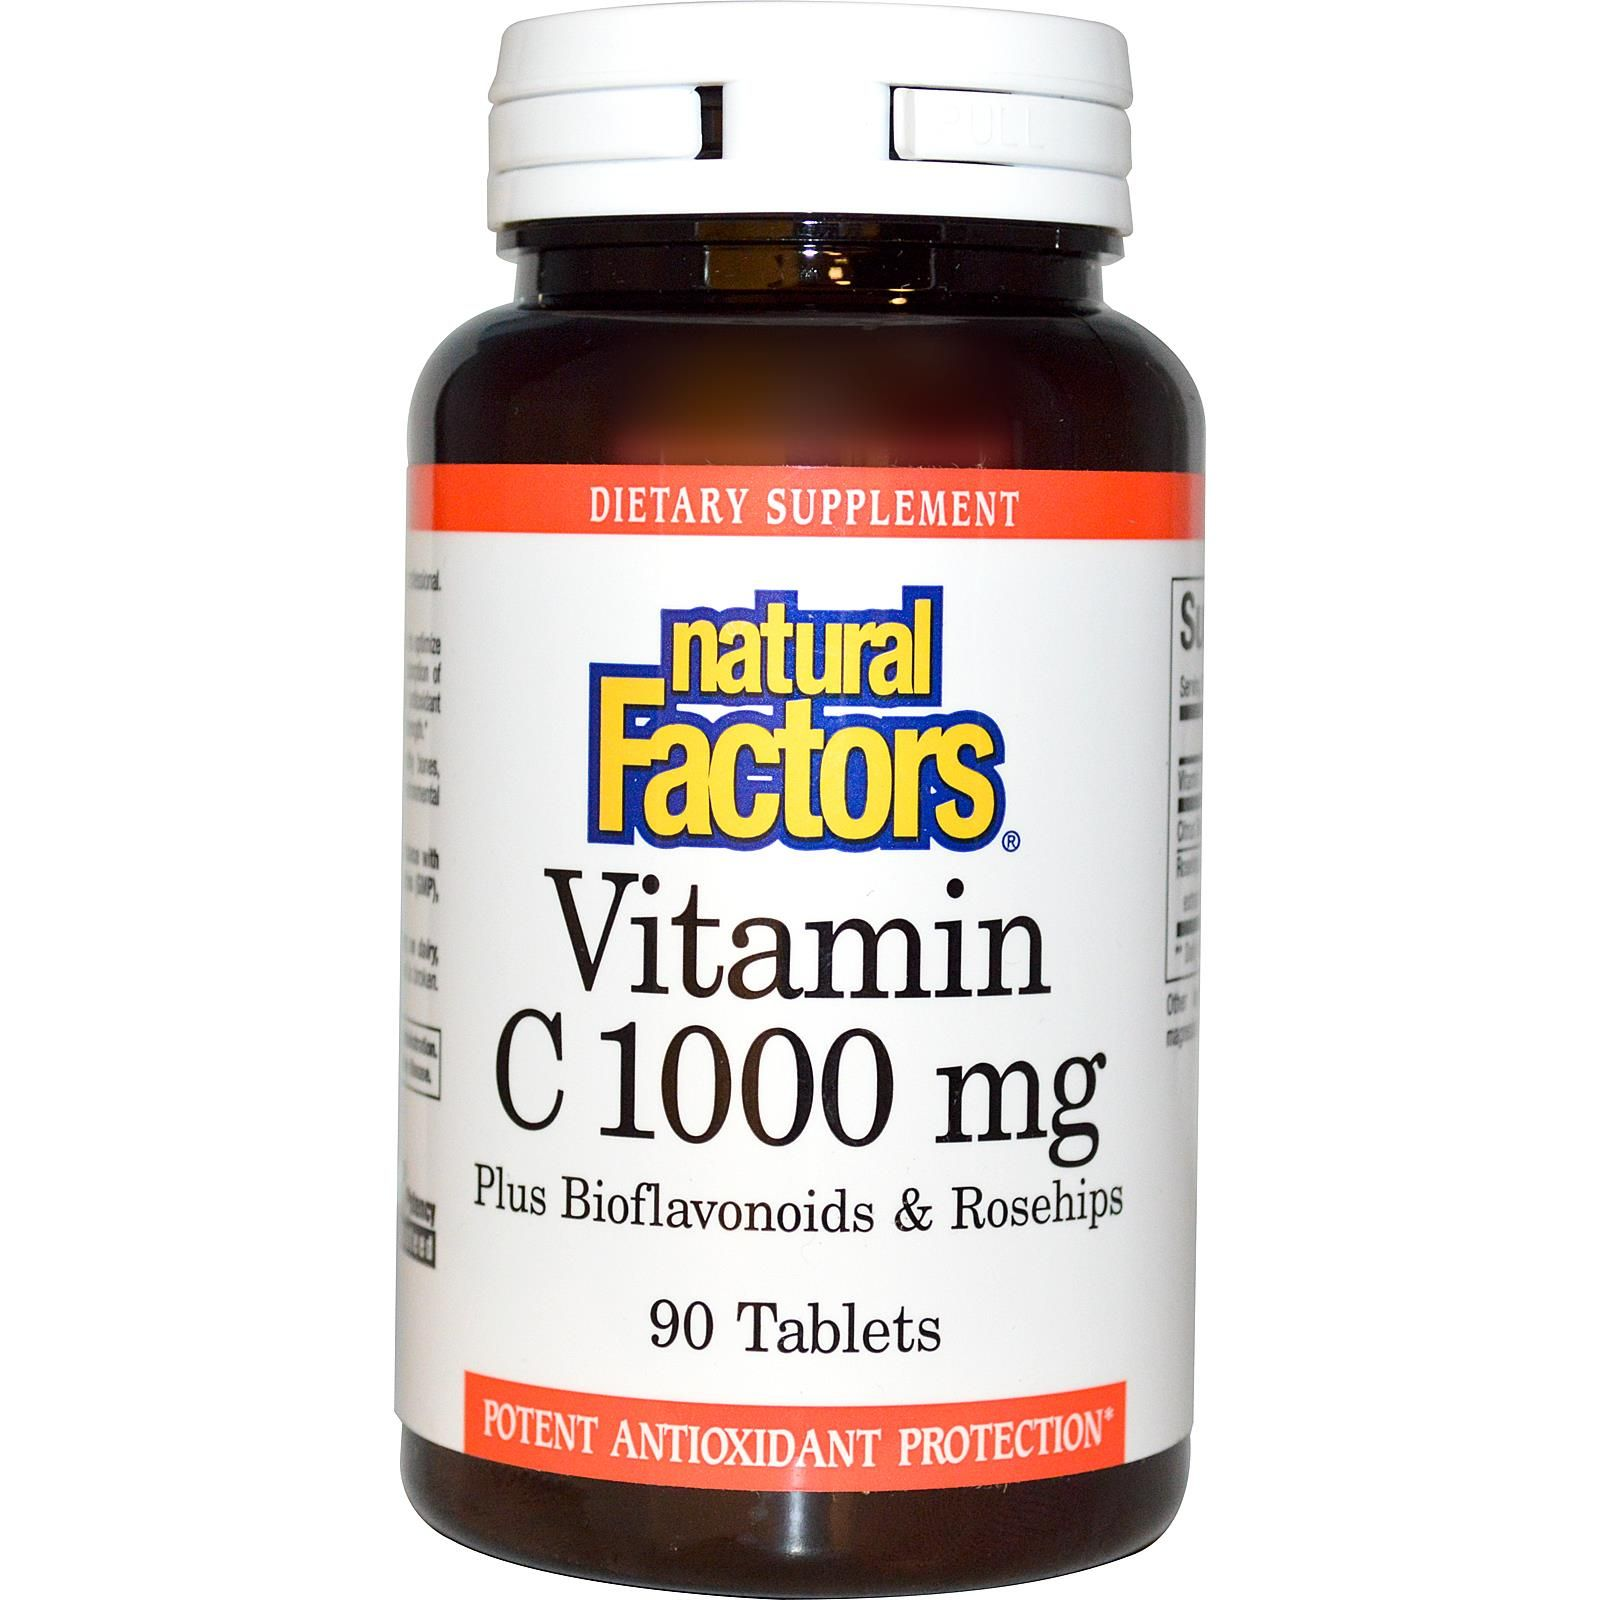 Natural Factors, Vitamin C, Plus Bioflavonoids & Rosehips